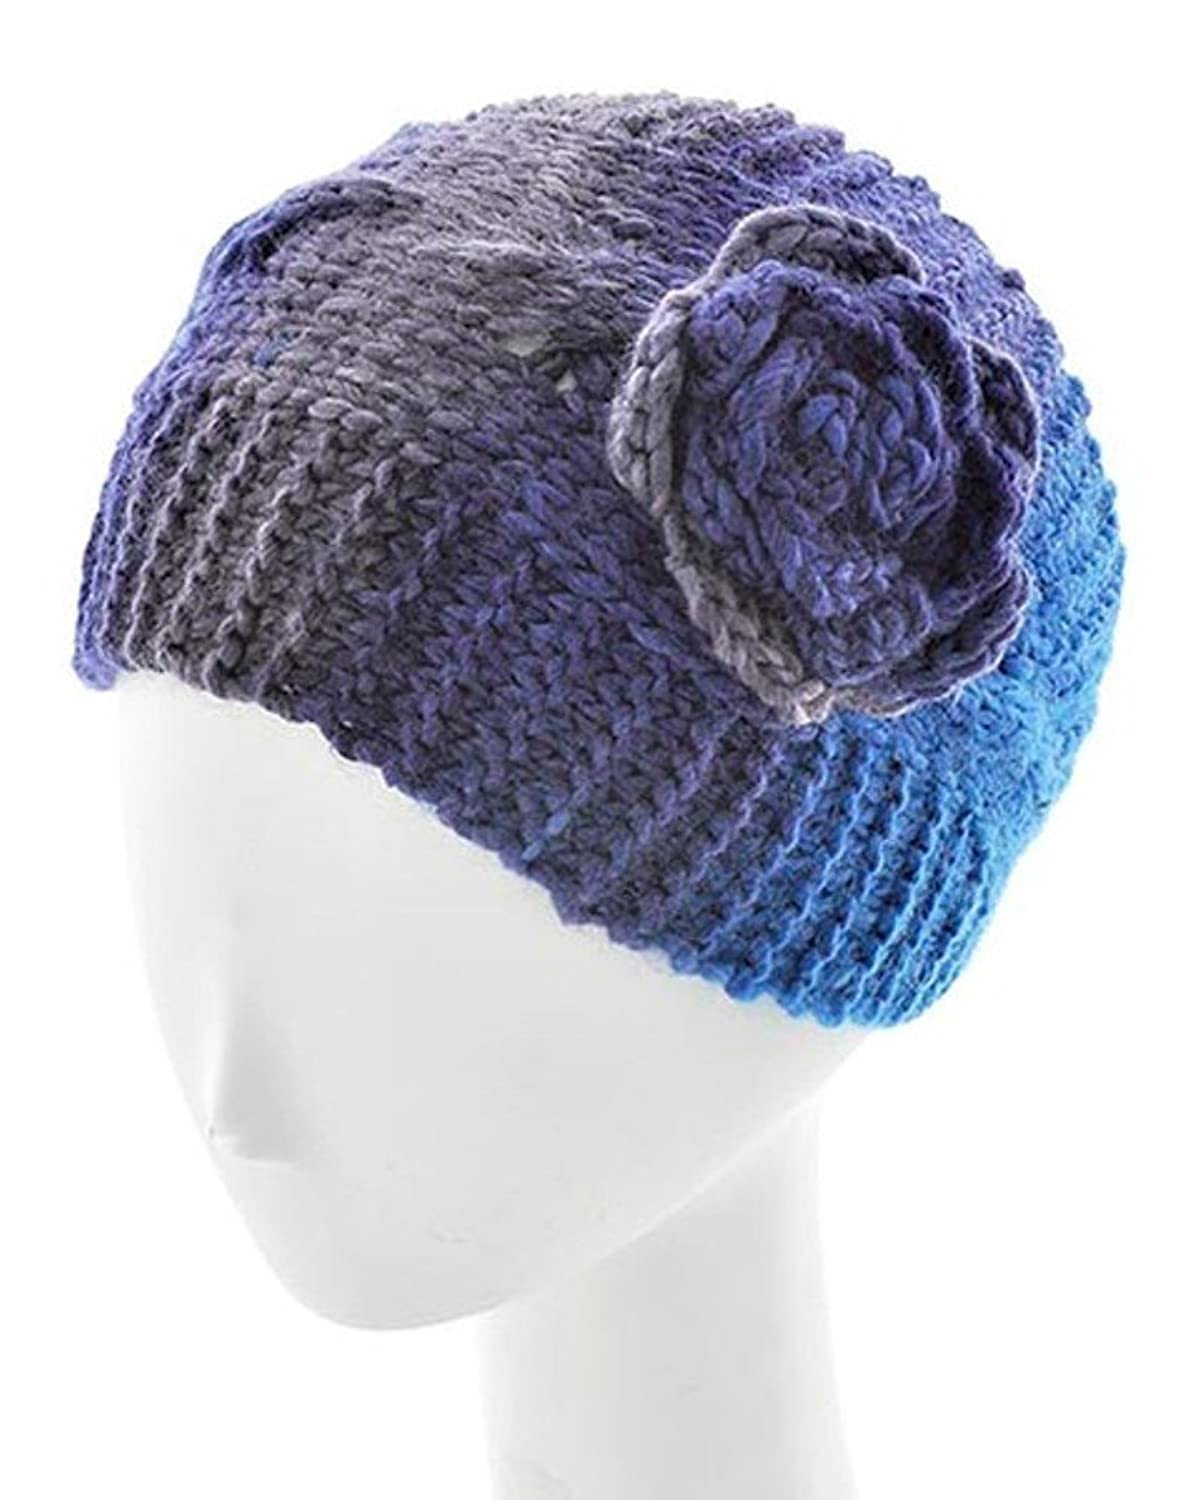 Shades of Blue Flower Cap